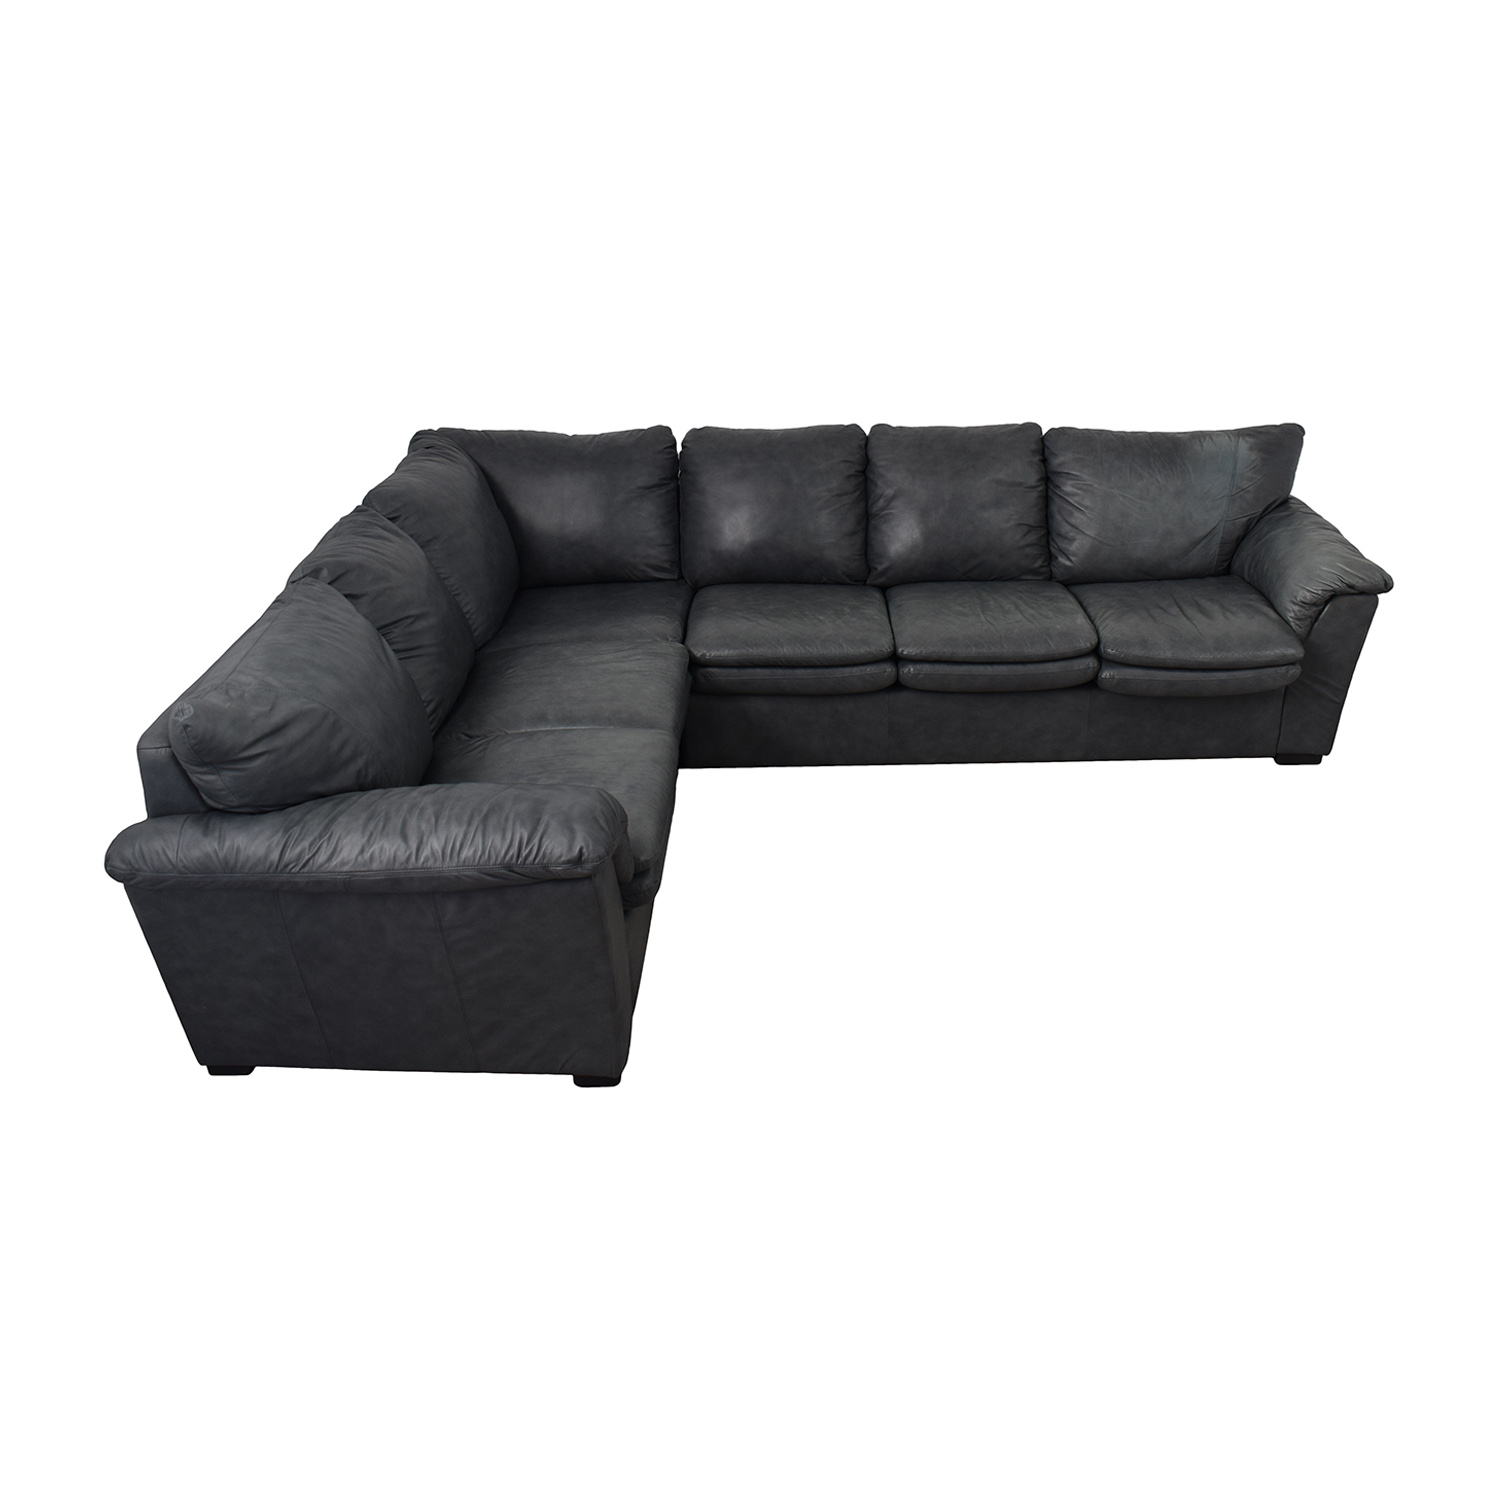 90% OFF - Jaymar Jaymar Furniture Charcoal Leather L-Shaped Sectional /  Sofas